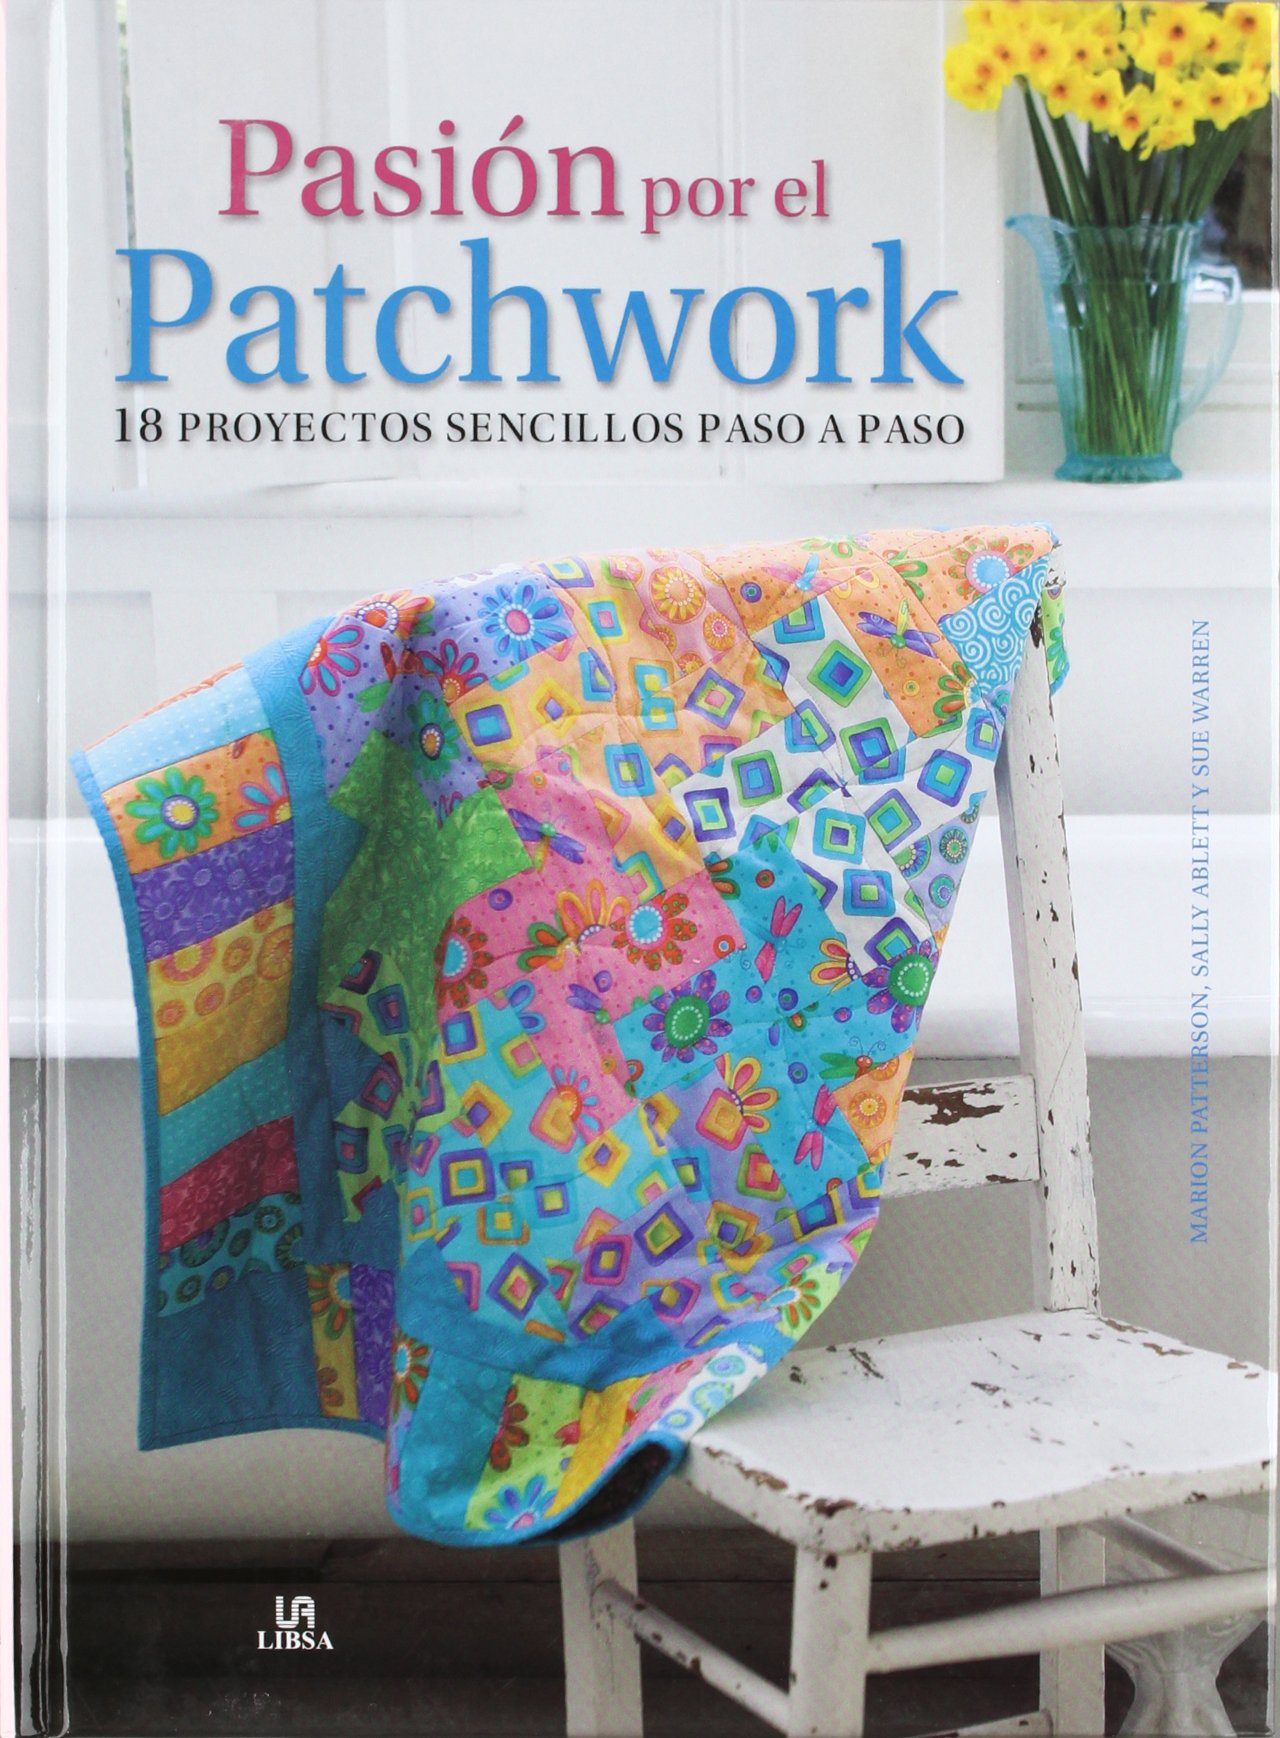 Download Pasión por el patchwork / Love Quilting: 18 proyectos sencillos paso a paso / 18 Simple Projects Step by Step (Spanish Edition) PDF